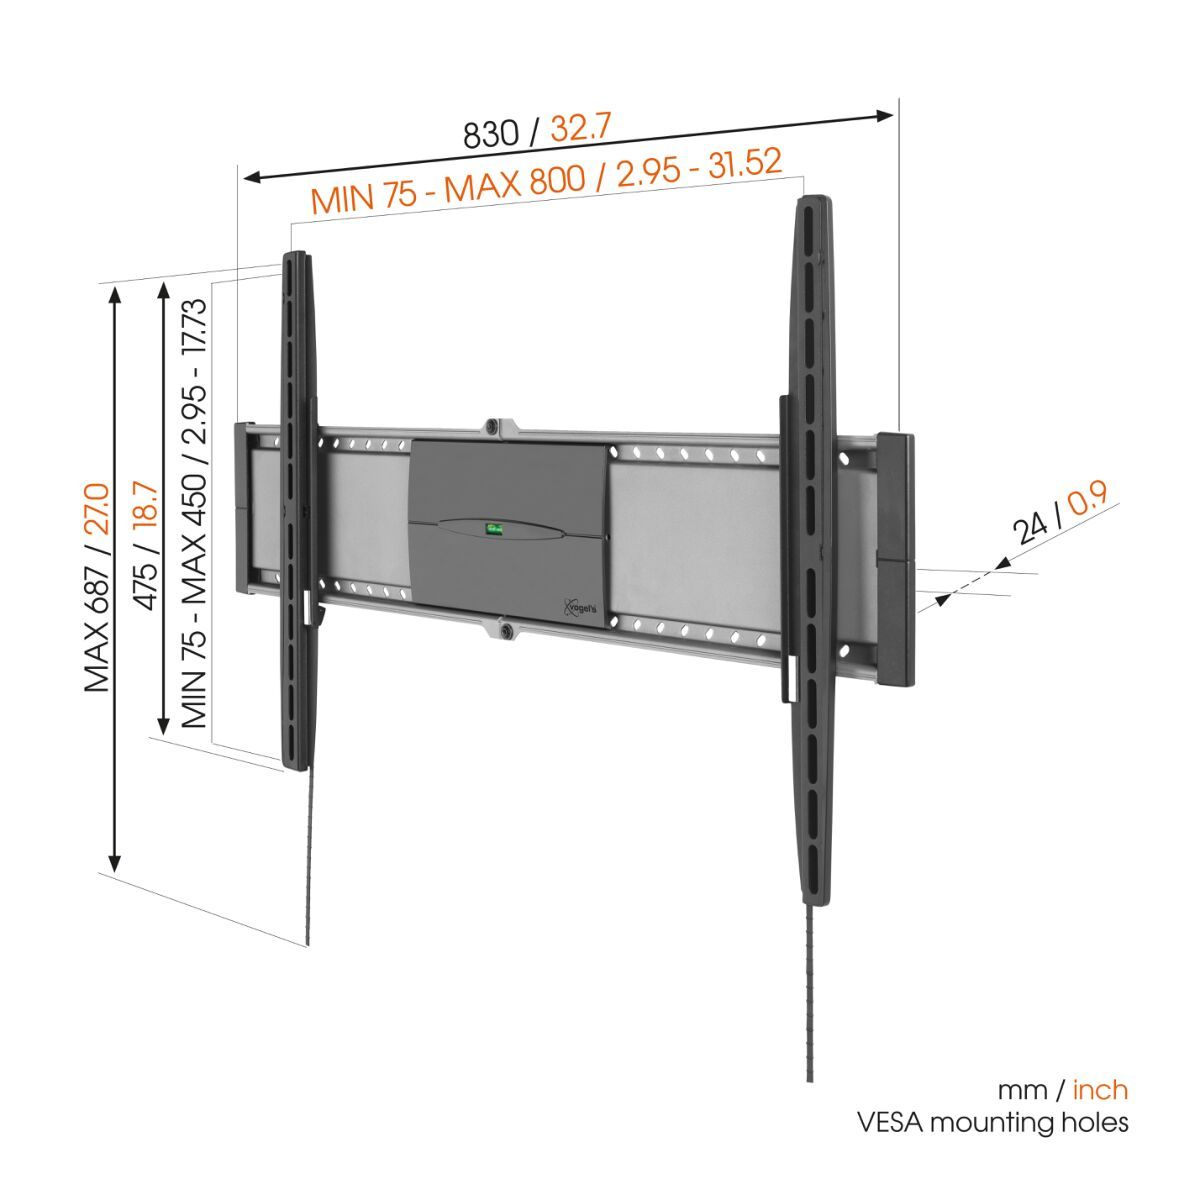 Vogel's EFW 8305 Fixed TV Wall Mount - Suitable for 40 up to 80 inch TVs up to 70 kg - Dimensions